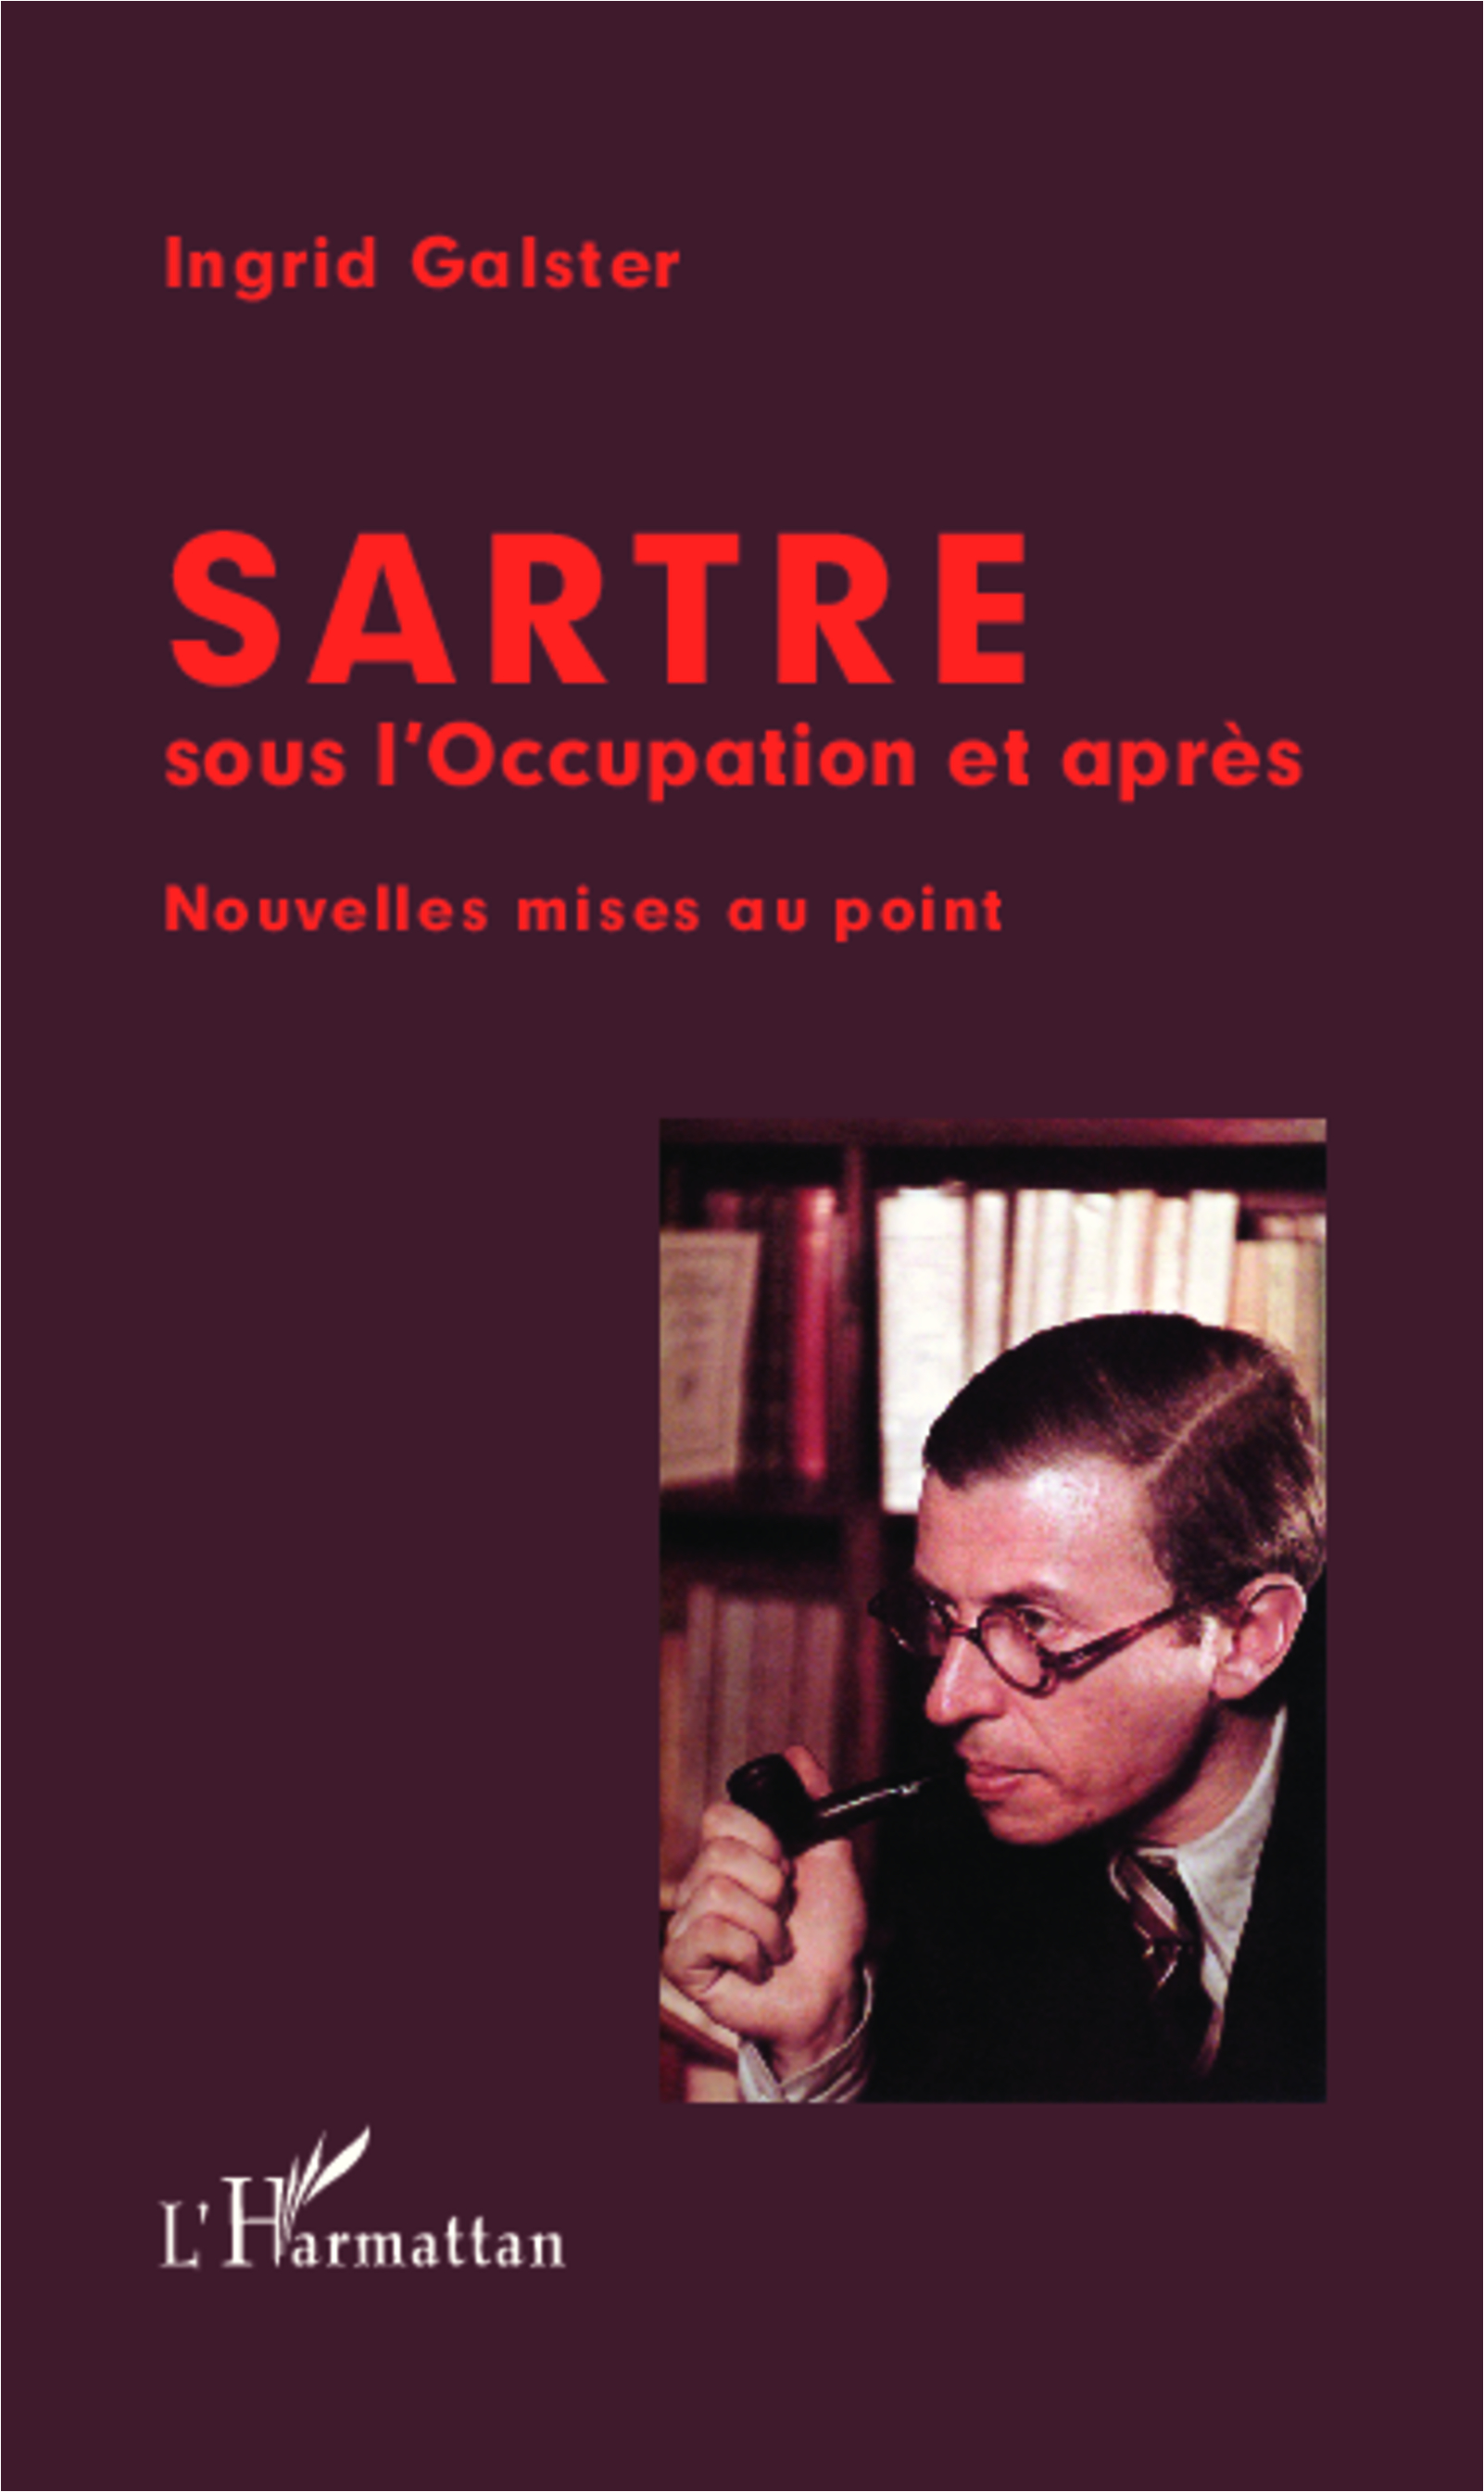 a review of the dramatic play the flies by jean paul sartre The french philosopher jean-paul sartre sartre was born in paris and with his 1943 play the flies.